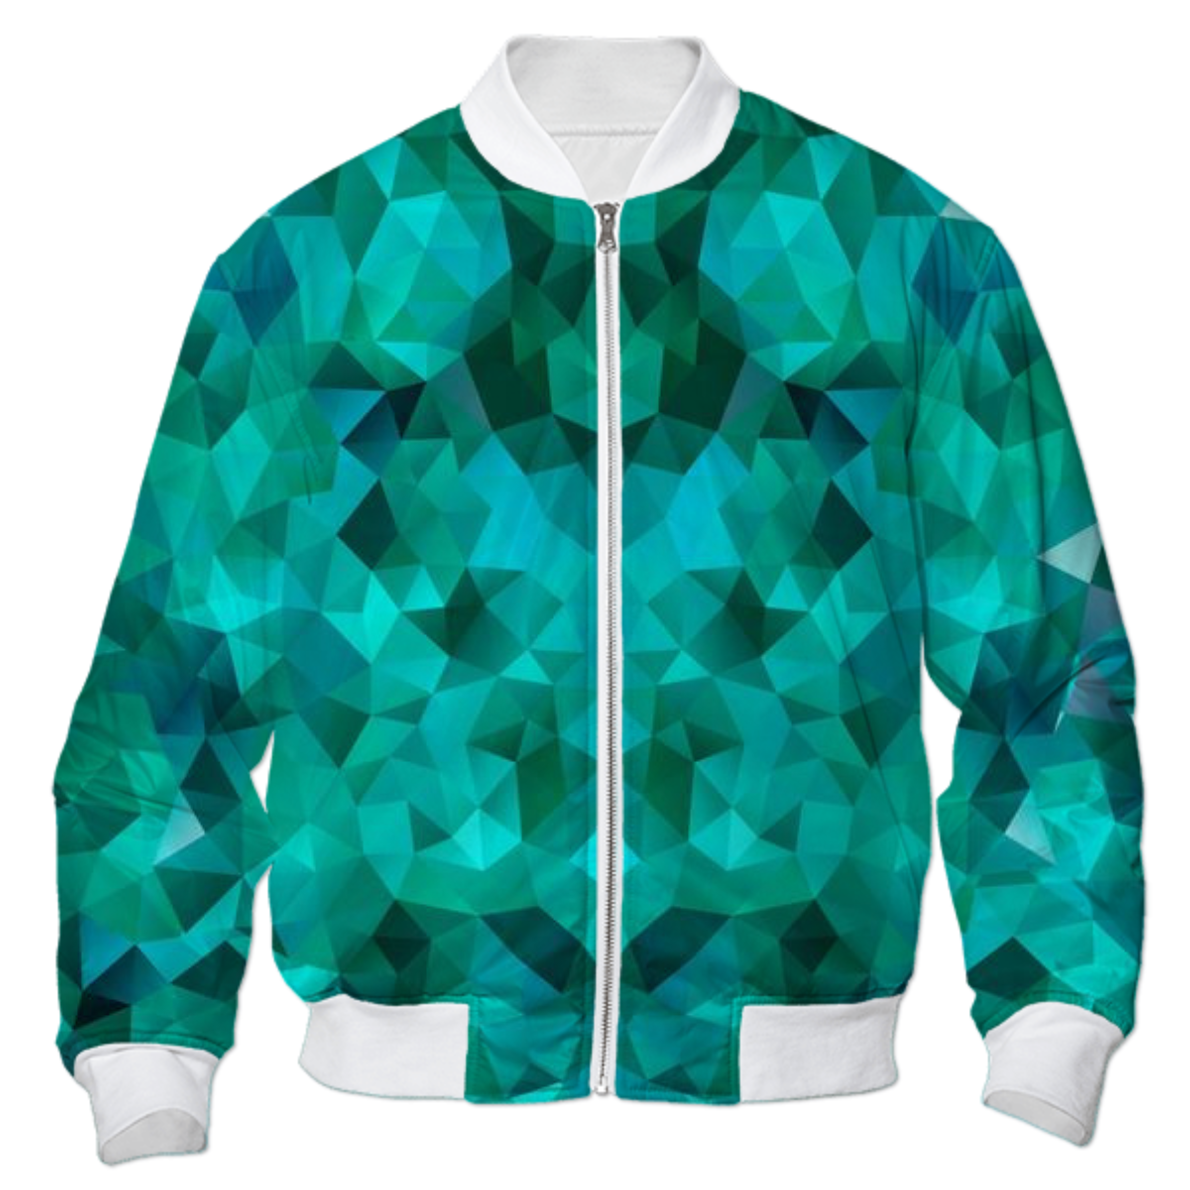 Shop POLYGON, TRIANGLES, PATTERN, GREEN, EMERALD, ABSTRACT ...